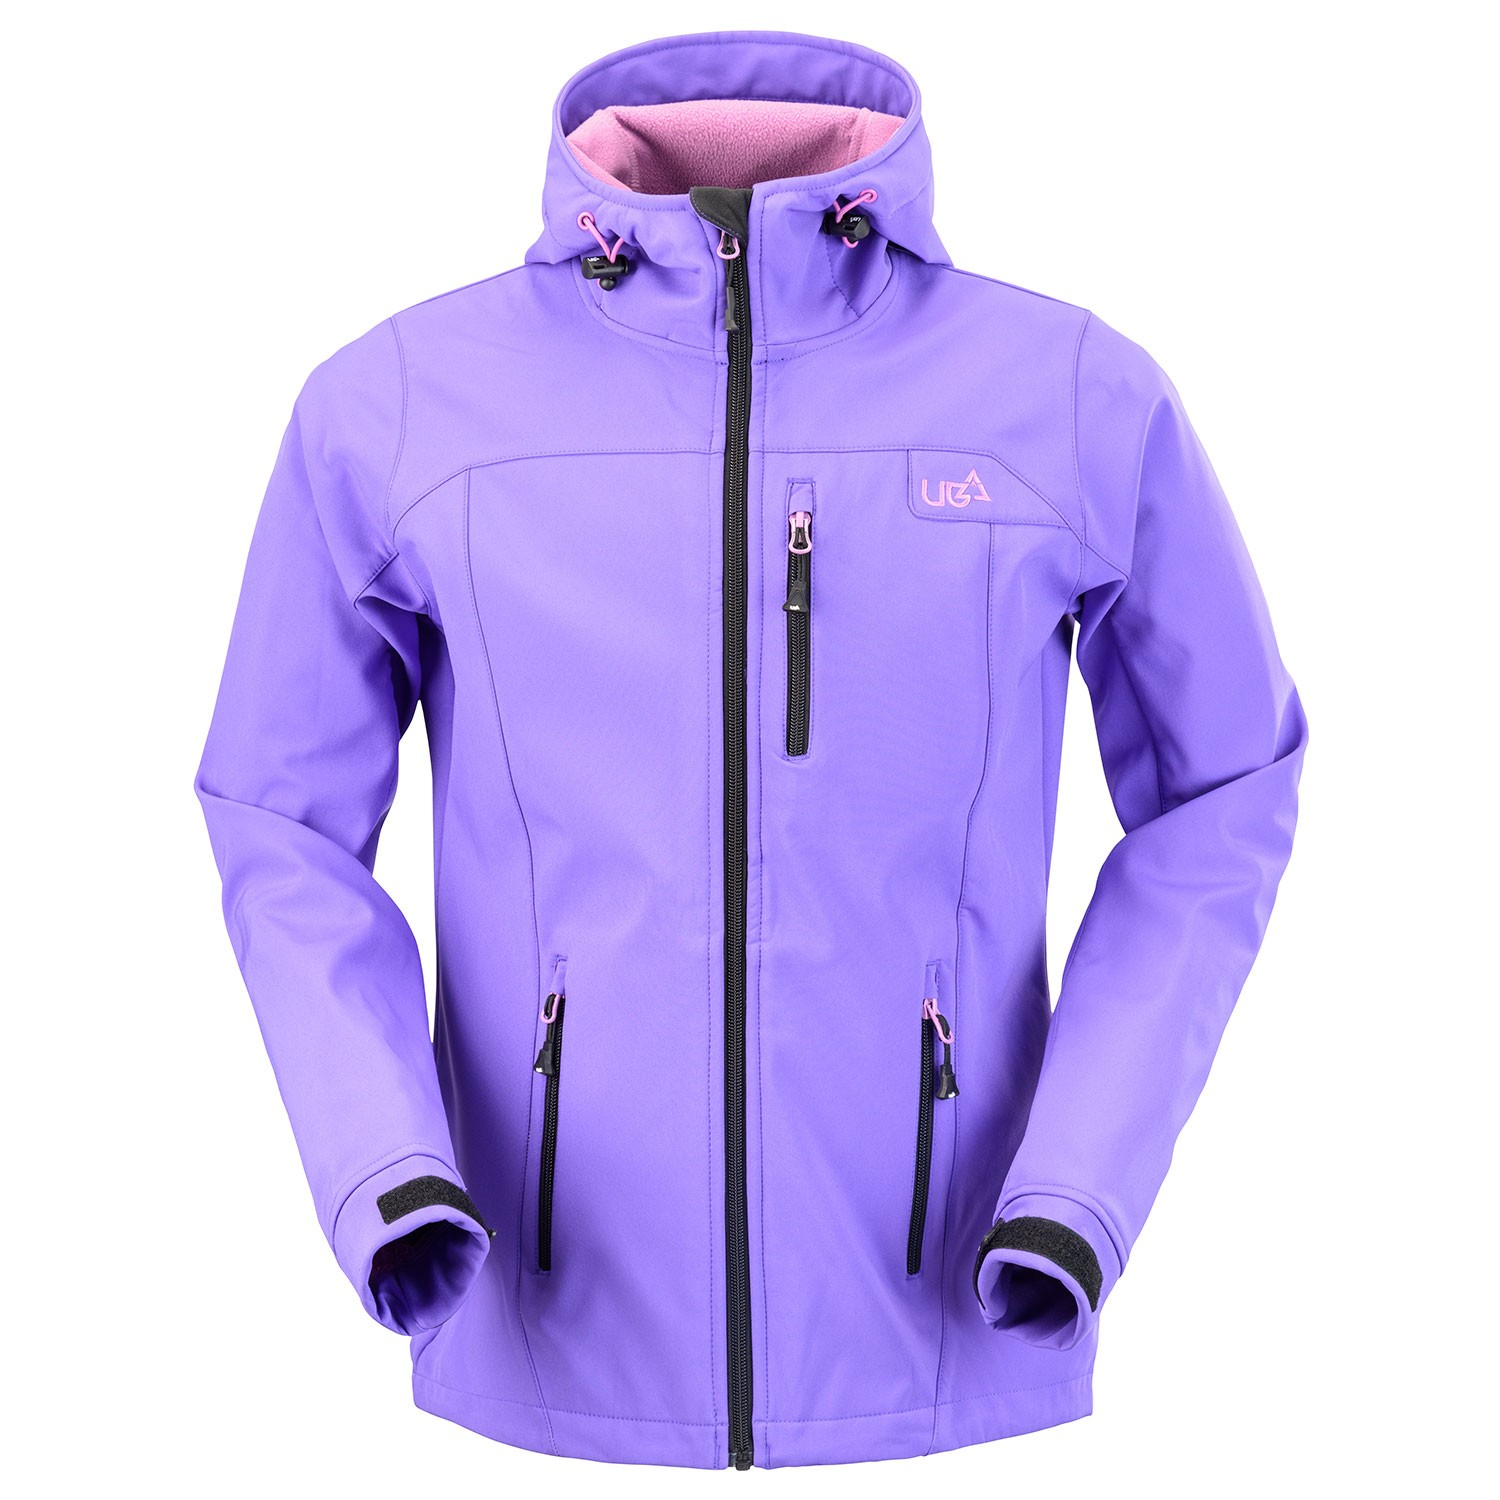 752630f68 Womens Purple Softshell Jacket Sepik- Free Delivery Over £20 - Urban ...